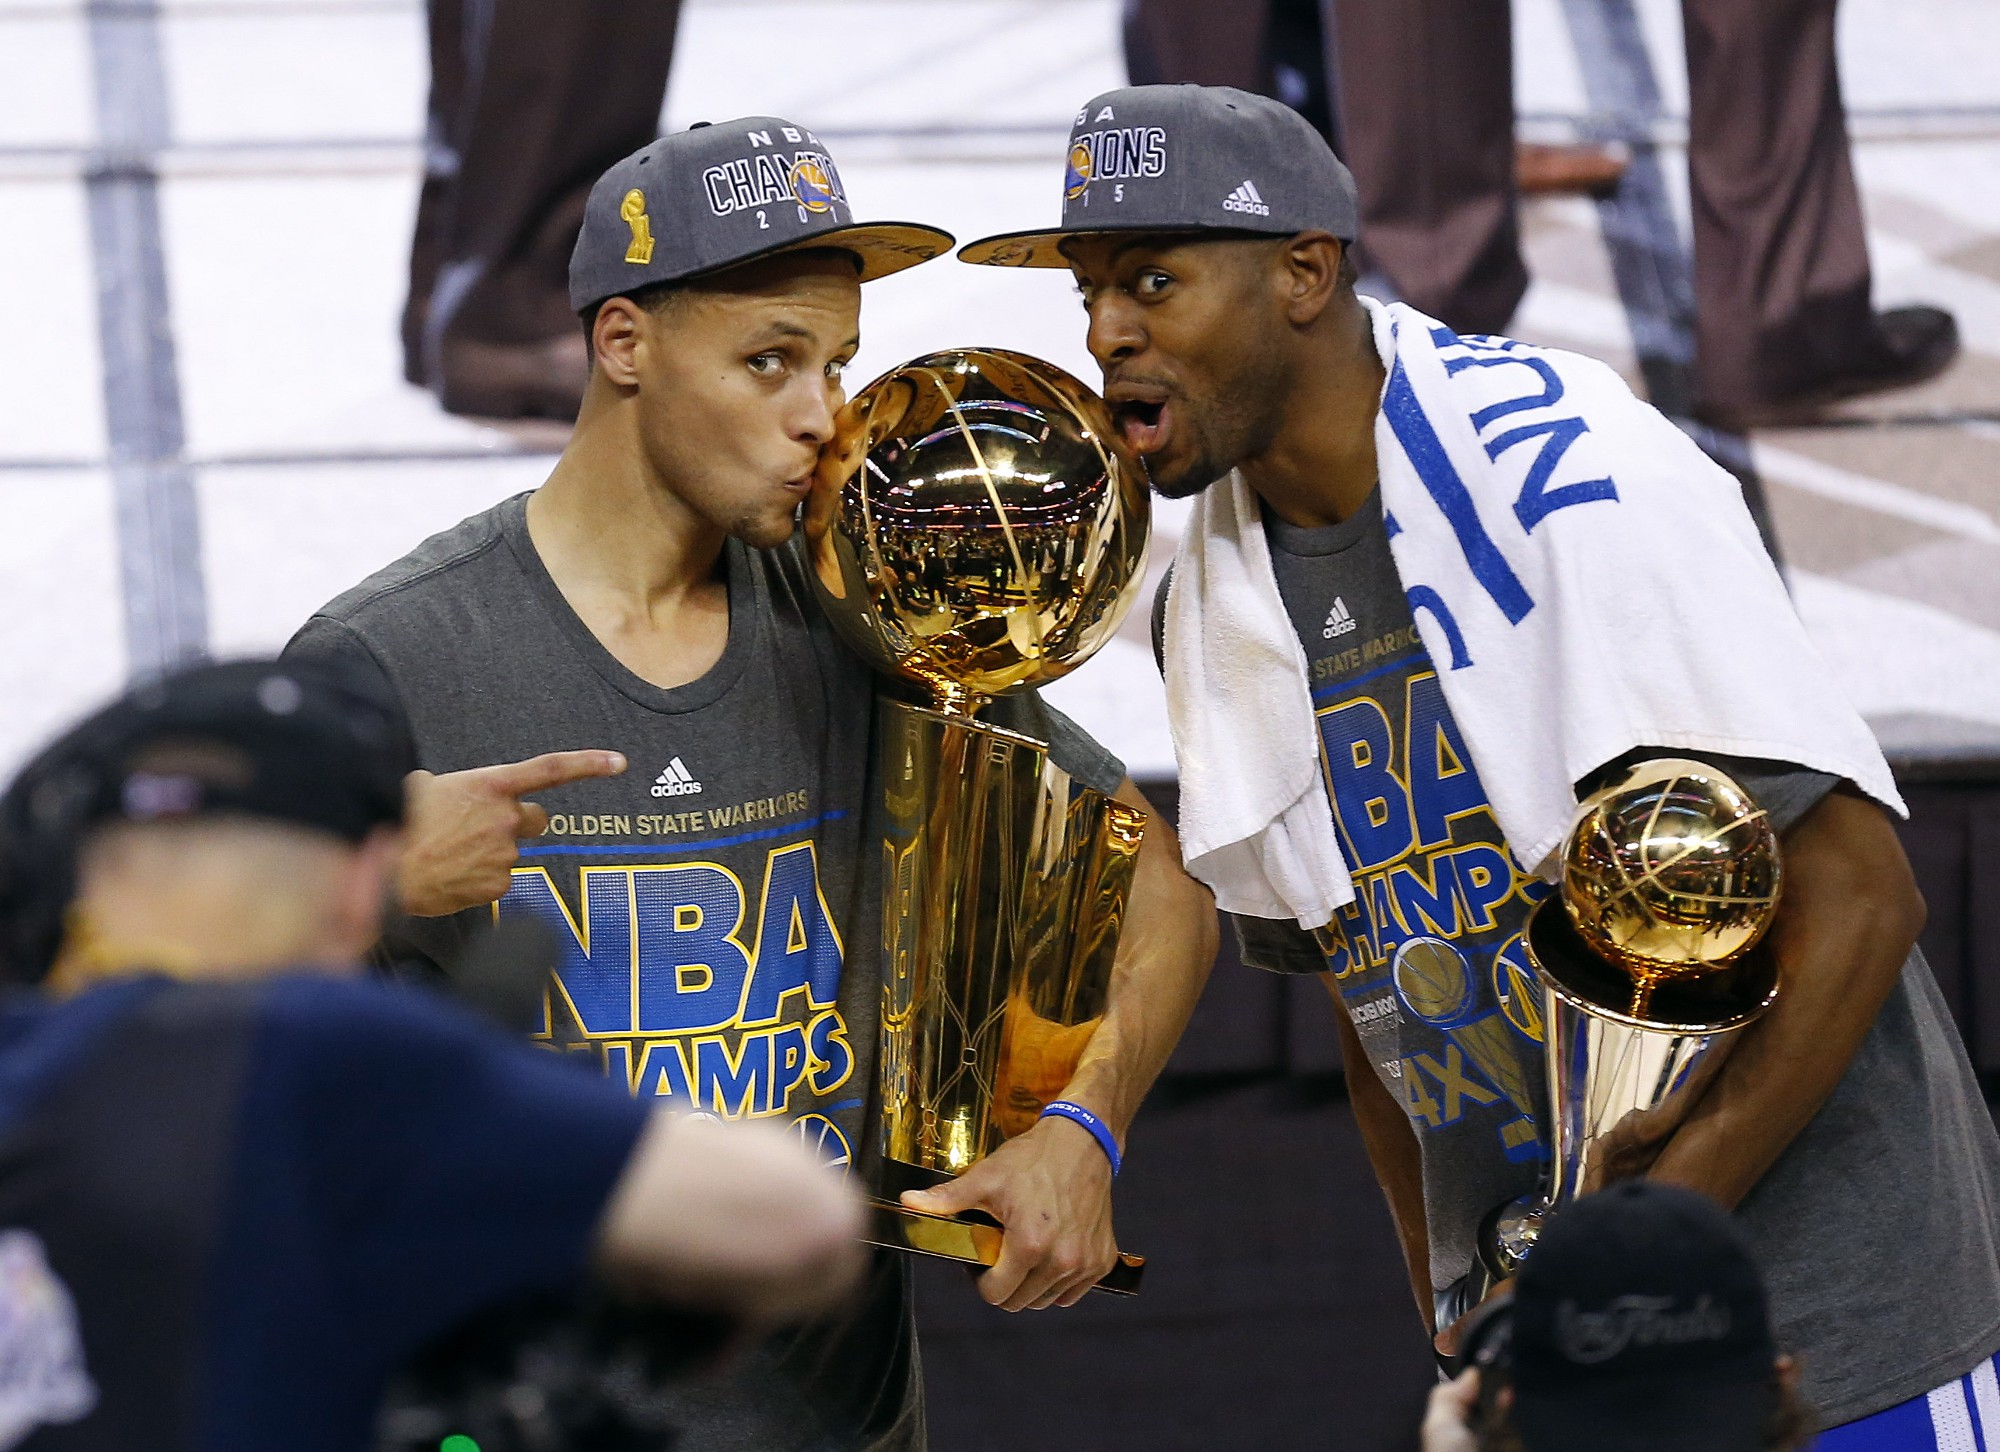 Understanding Data The Golden State Warriors And Role Of Analytics